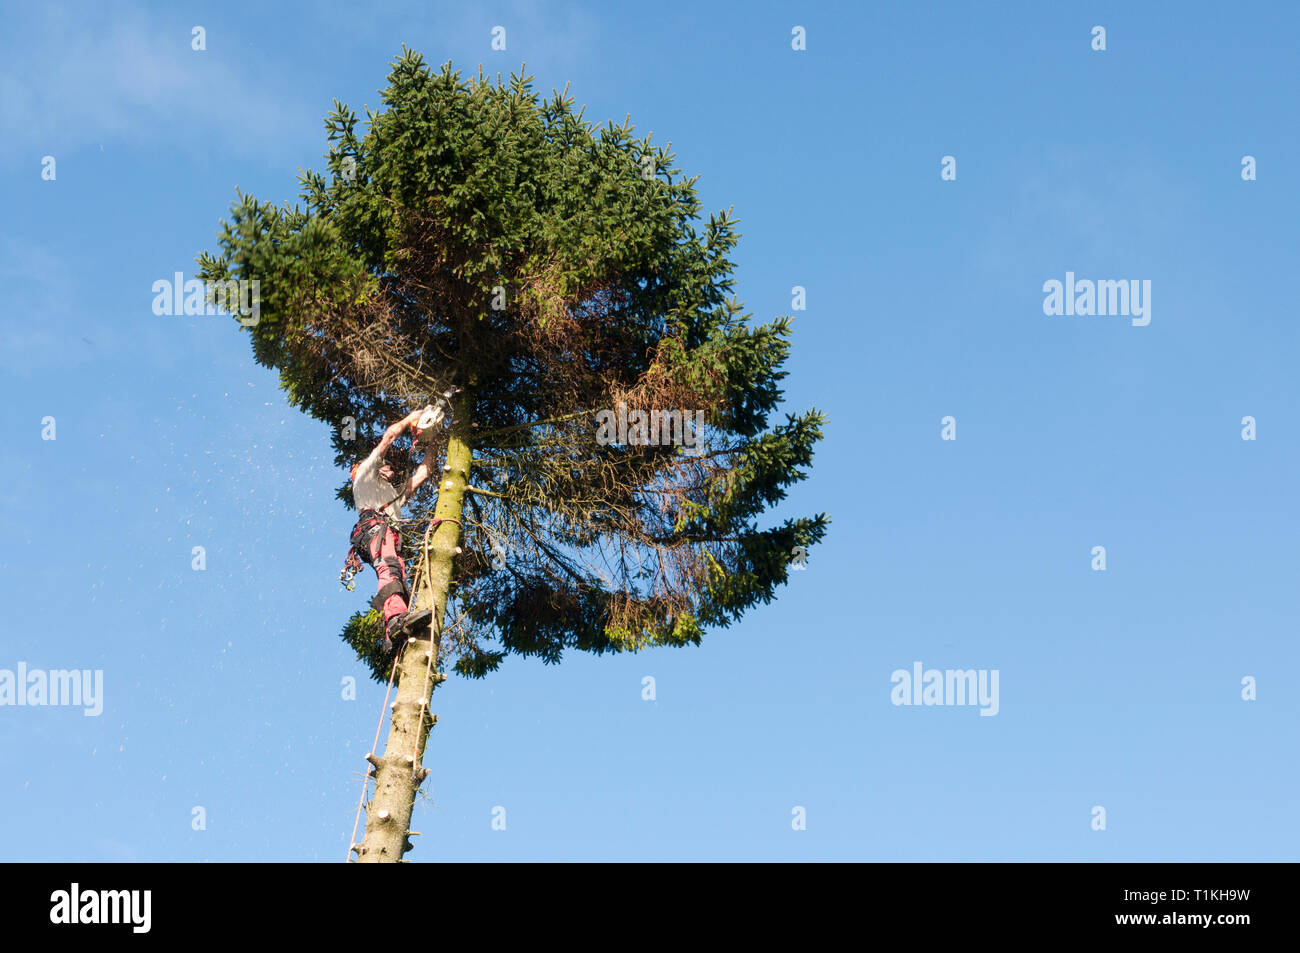 Tree surgeon stripping, cutting off limbs of a conifer before felling - Stock Image